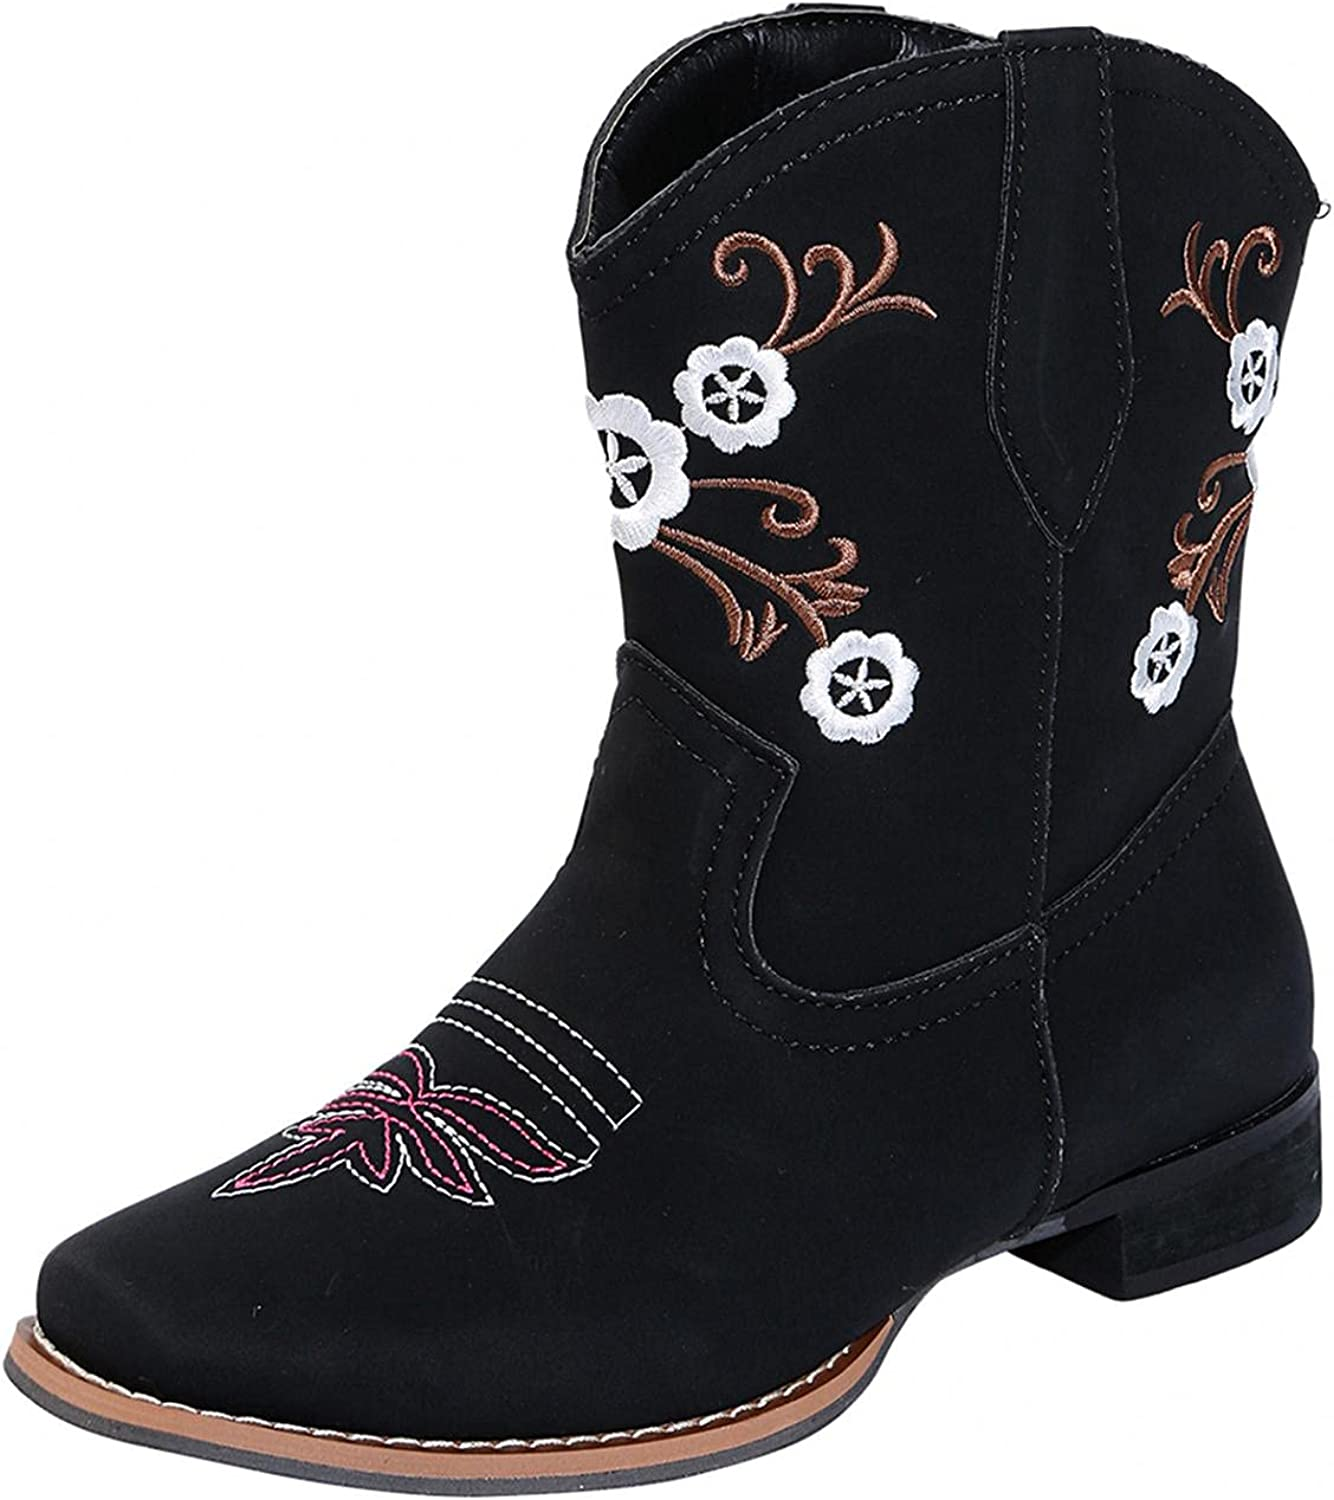 Masbird Boots Ranking TOP3 for Women Sunflowers Embroidery Cowboy Mid Under blast sales C